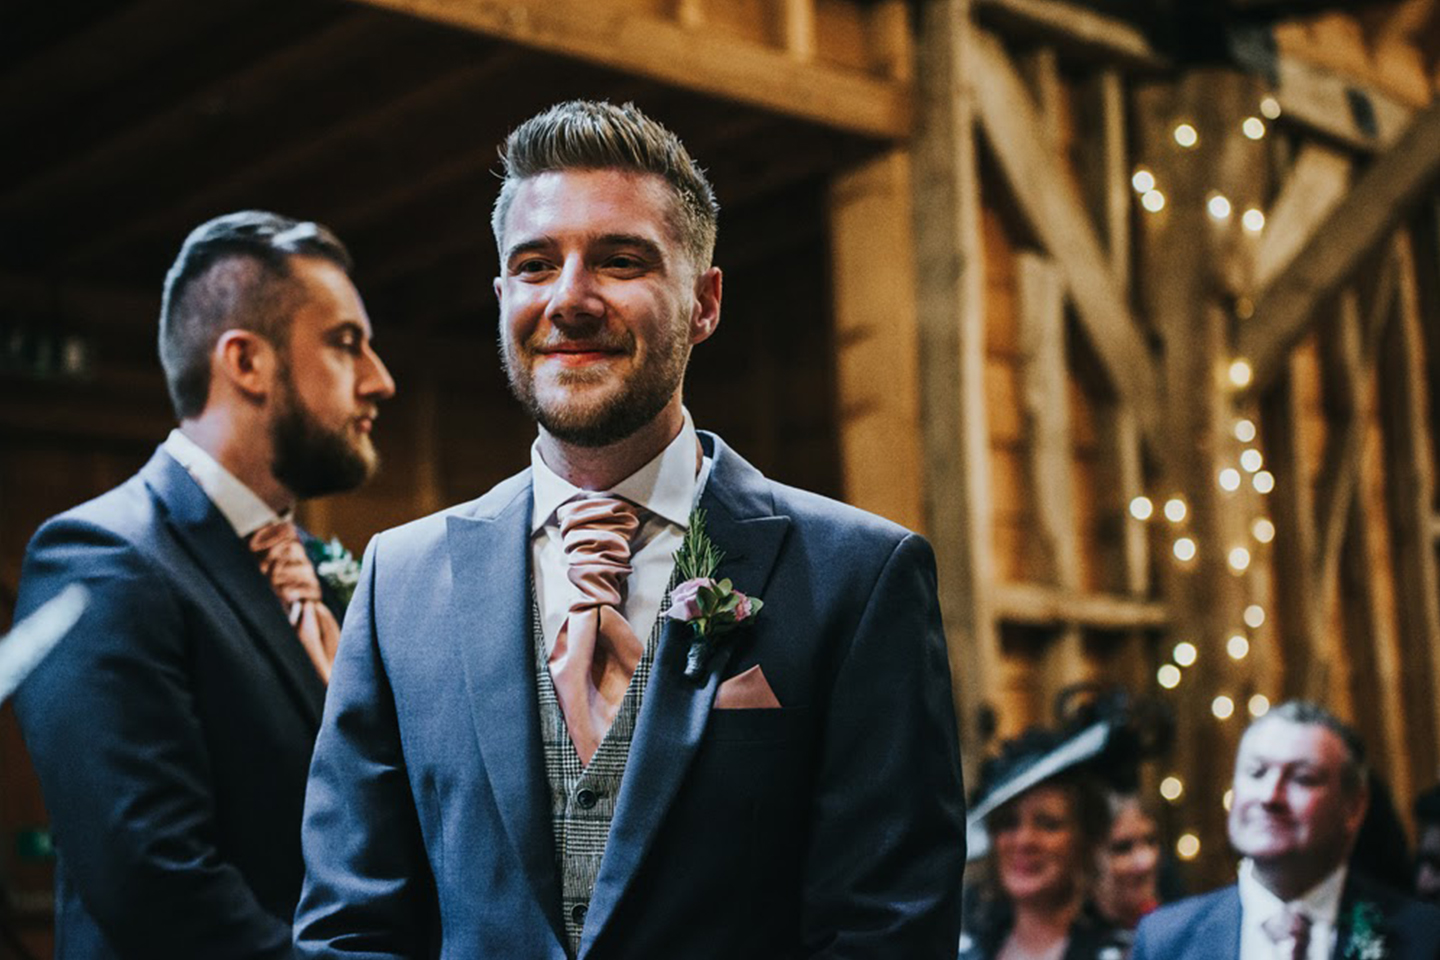 The groom wore a navy wedding suit for his wedding day at Bassmead Manor Barns